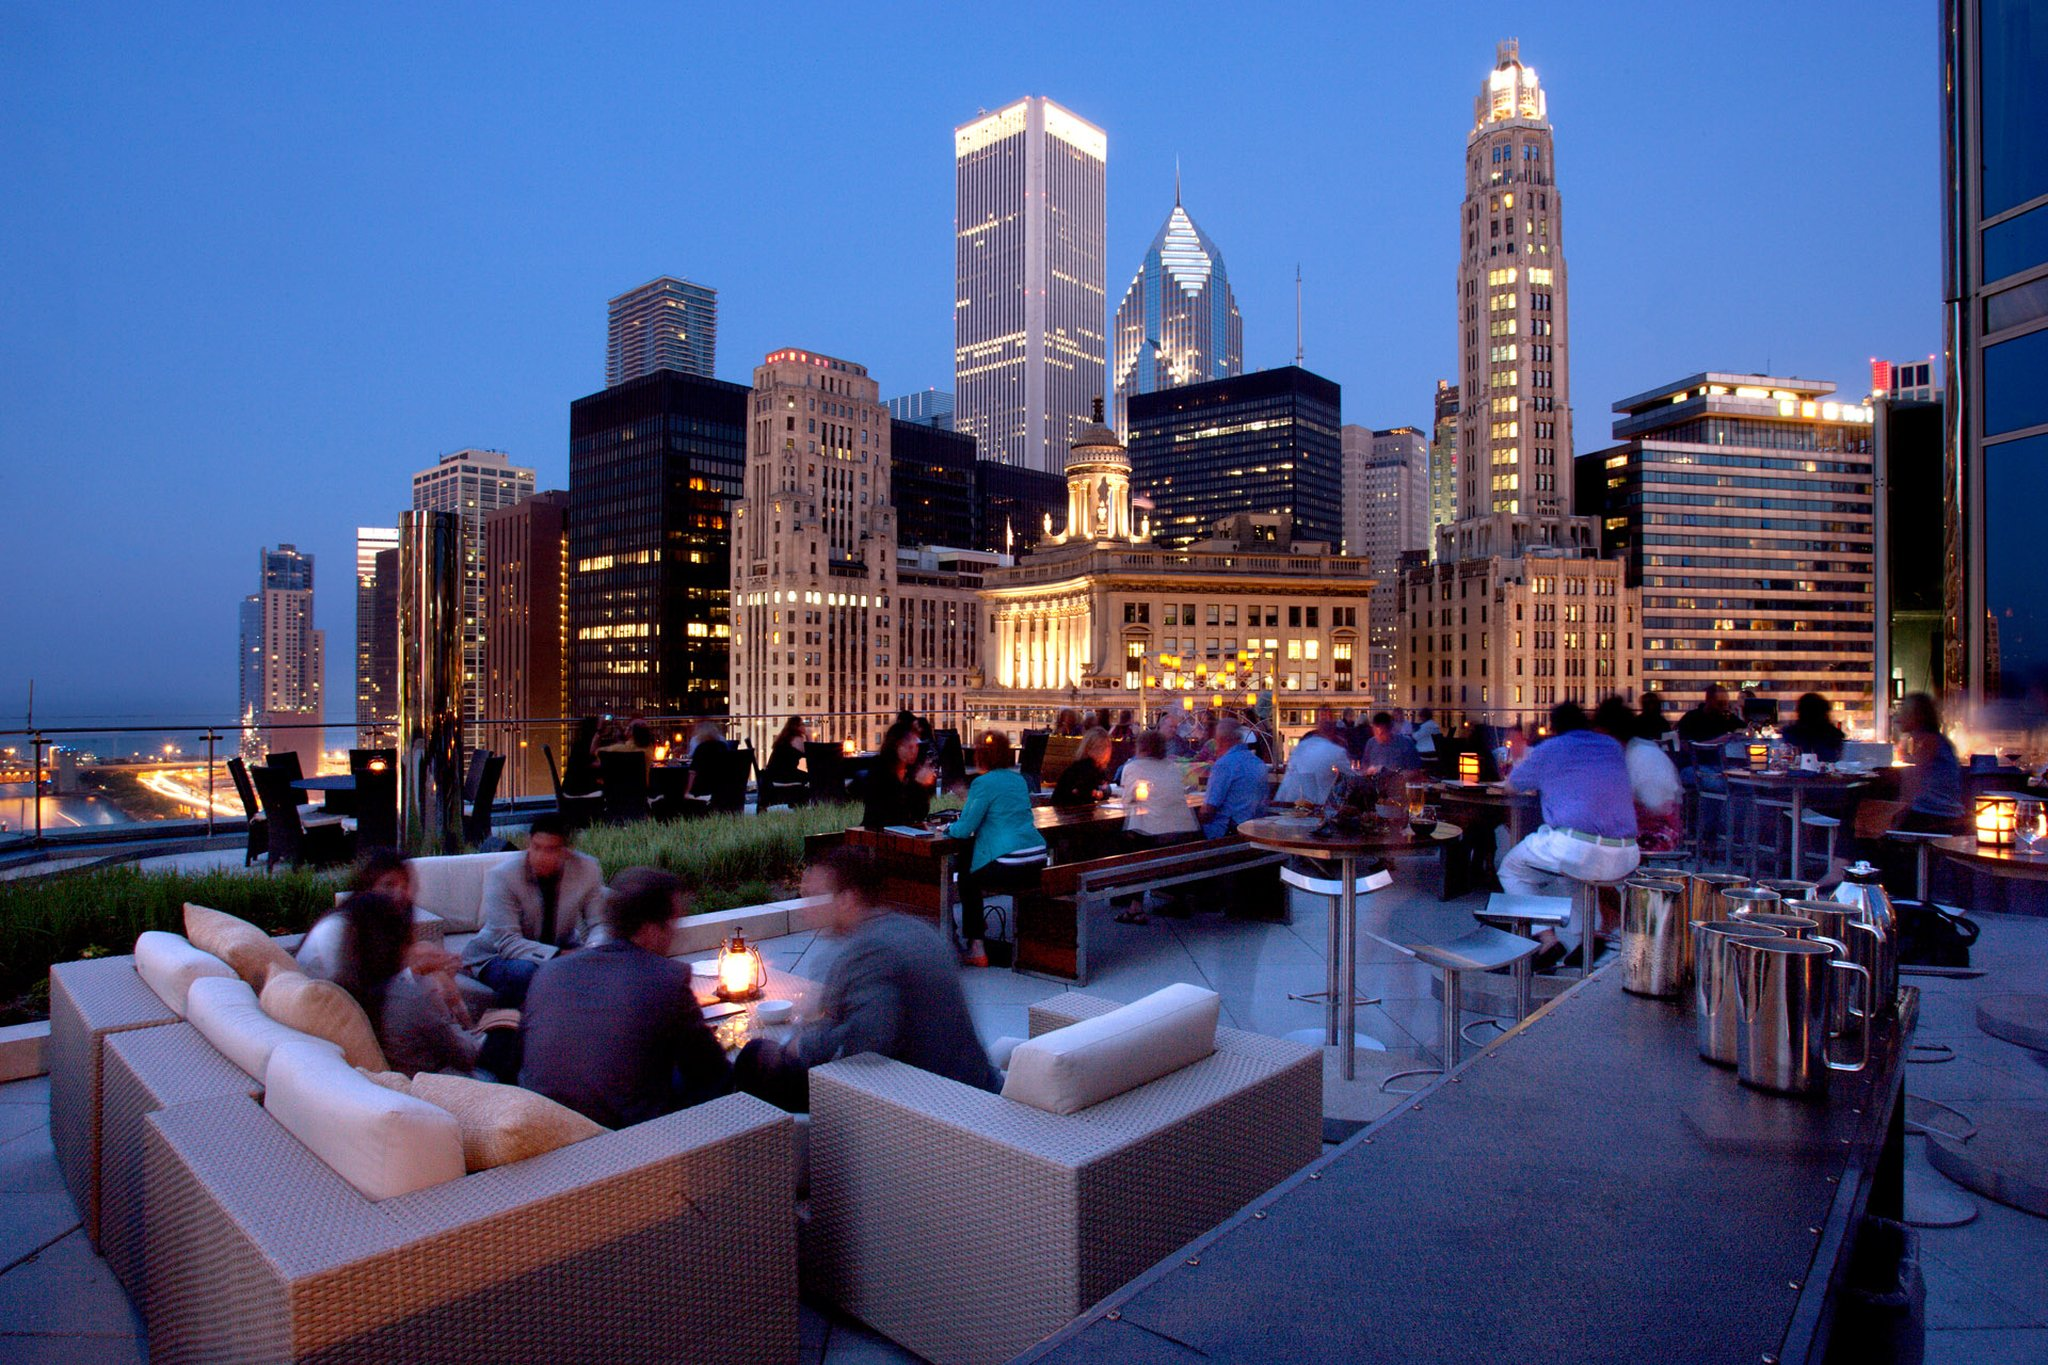 Discover hotels in Chicago, things to do & where to stay. Our hotels are near the very best Chicago attractions, neighborhoods & restaurants.